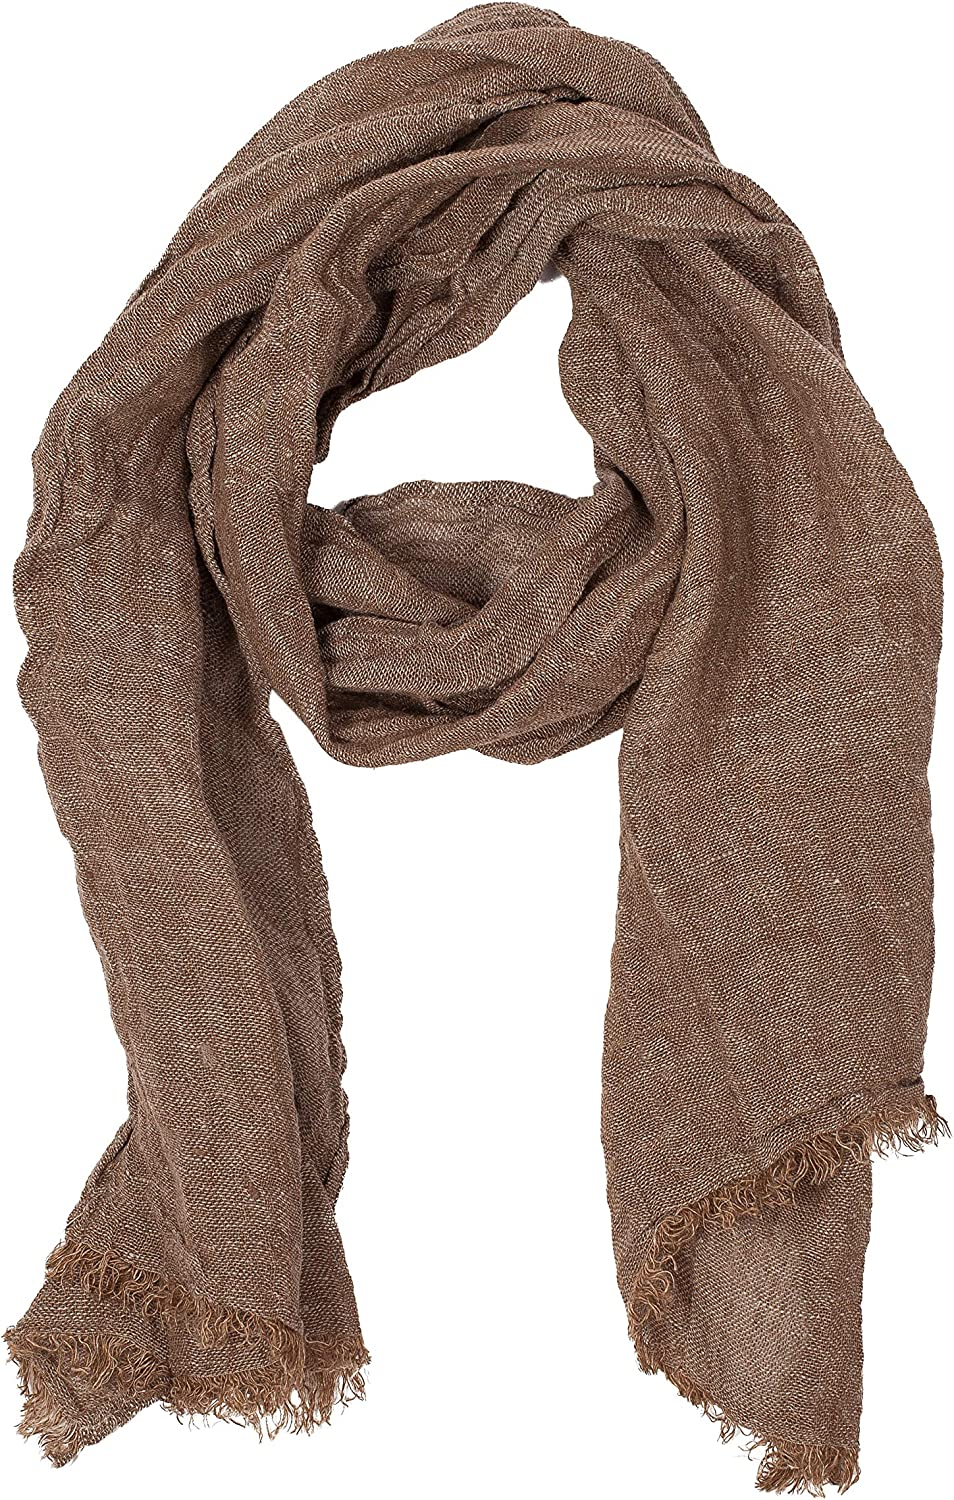 100% Linen Scarf   Brown Scarf   Scarves For Women   Mens Scarf   Linen